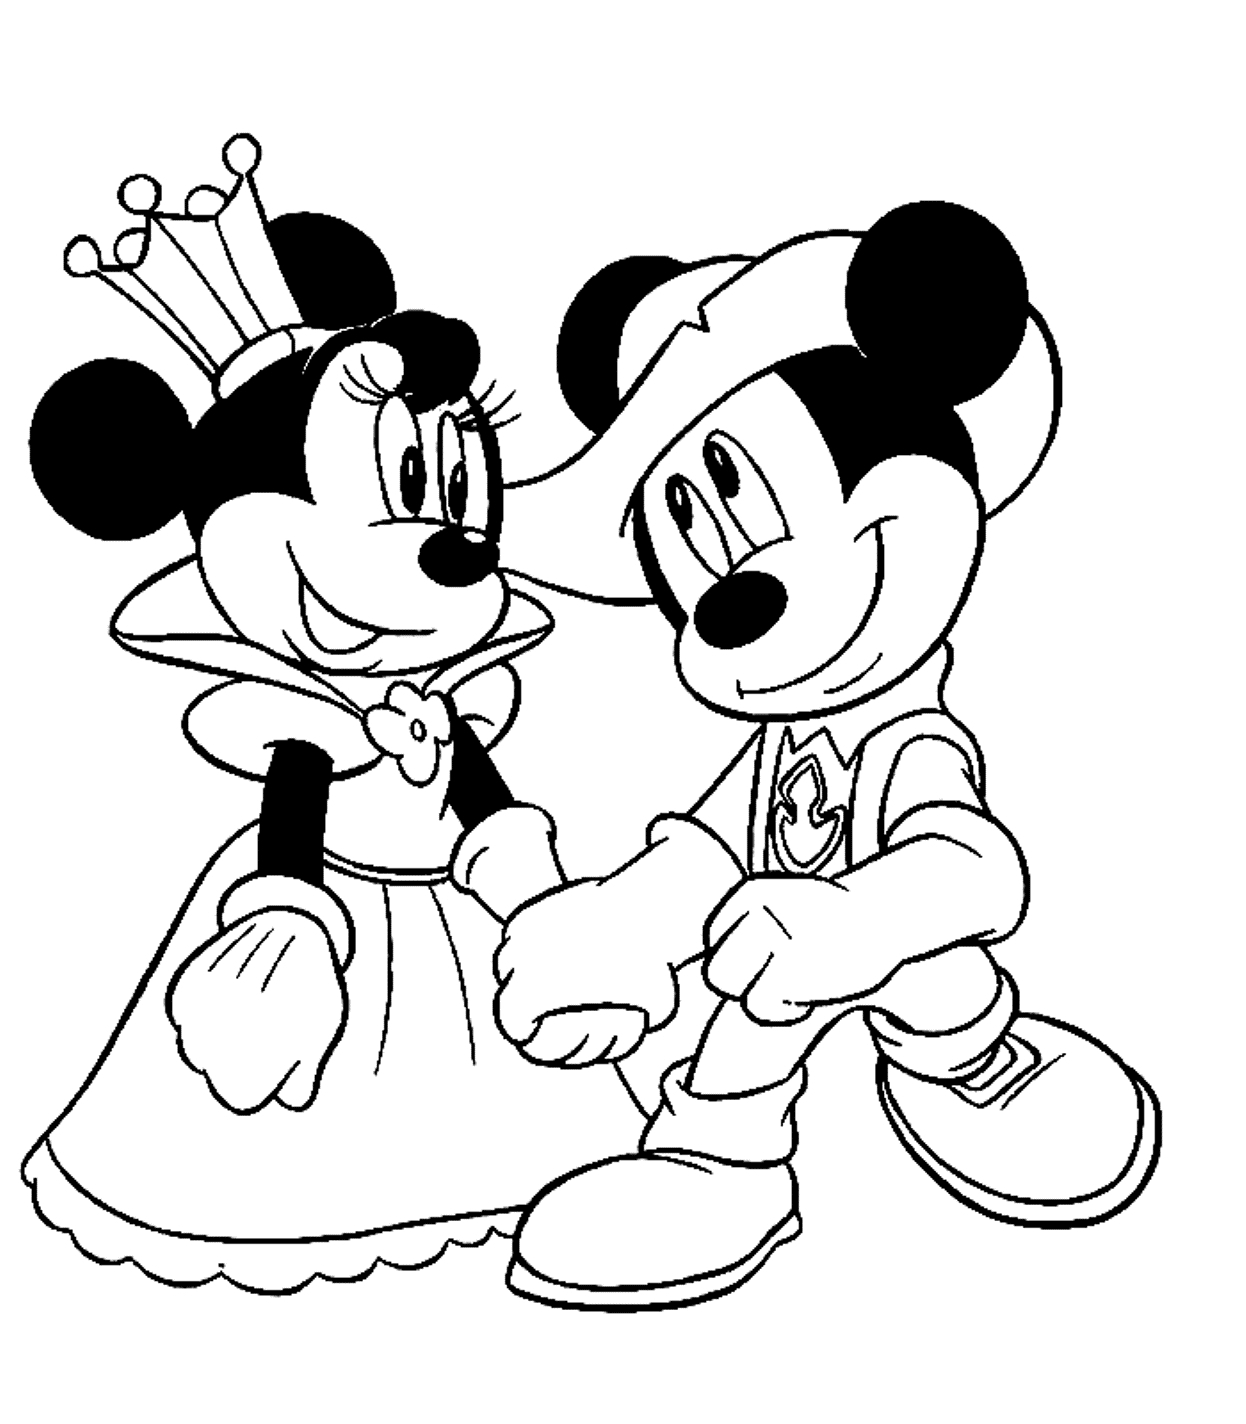 1246x1424 Mickey And Minnie Mouse Drawing Mickey Mouse And Minnie Mouse